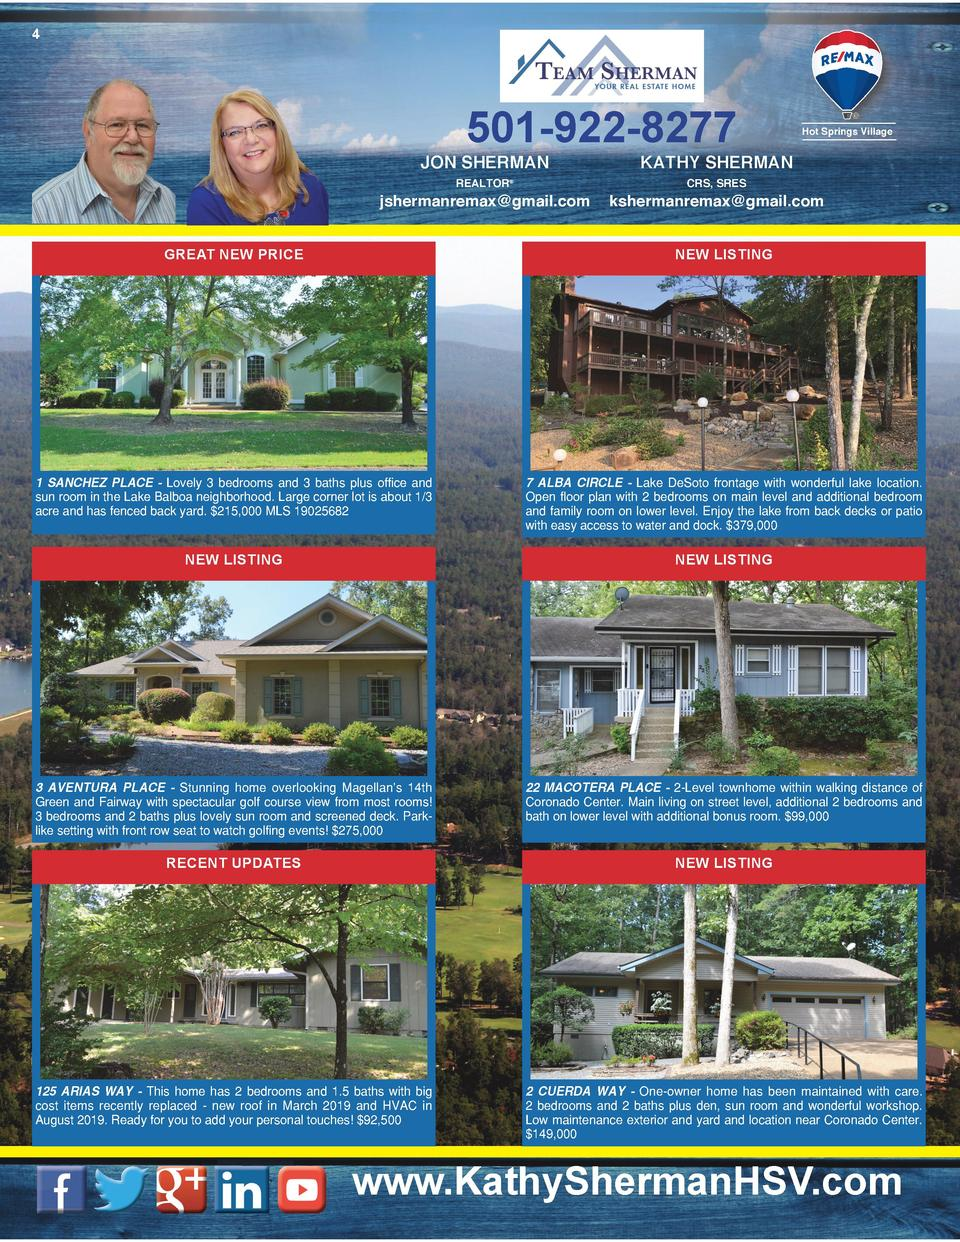 4  501-922-8277 JON SHERMAN  Hot Springs Village  KATHY SHERMAN  REALTOR    CRS, SRES  jshermanremax gmail.com  kshermanre...